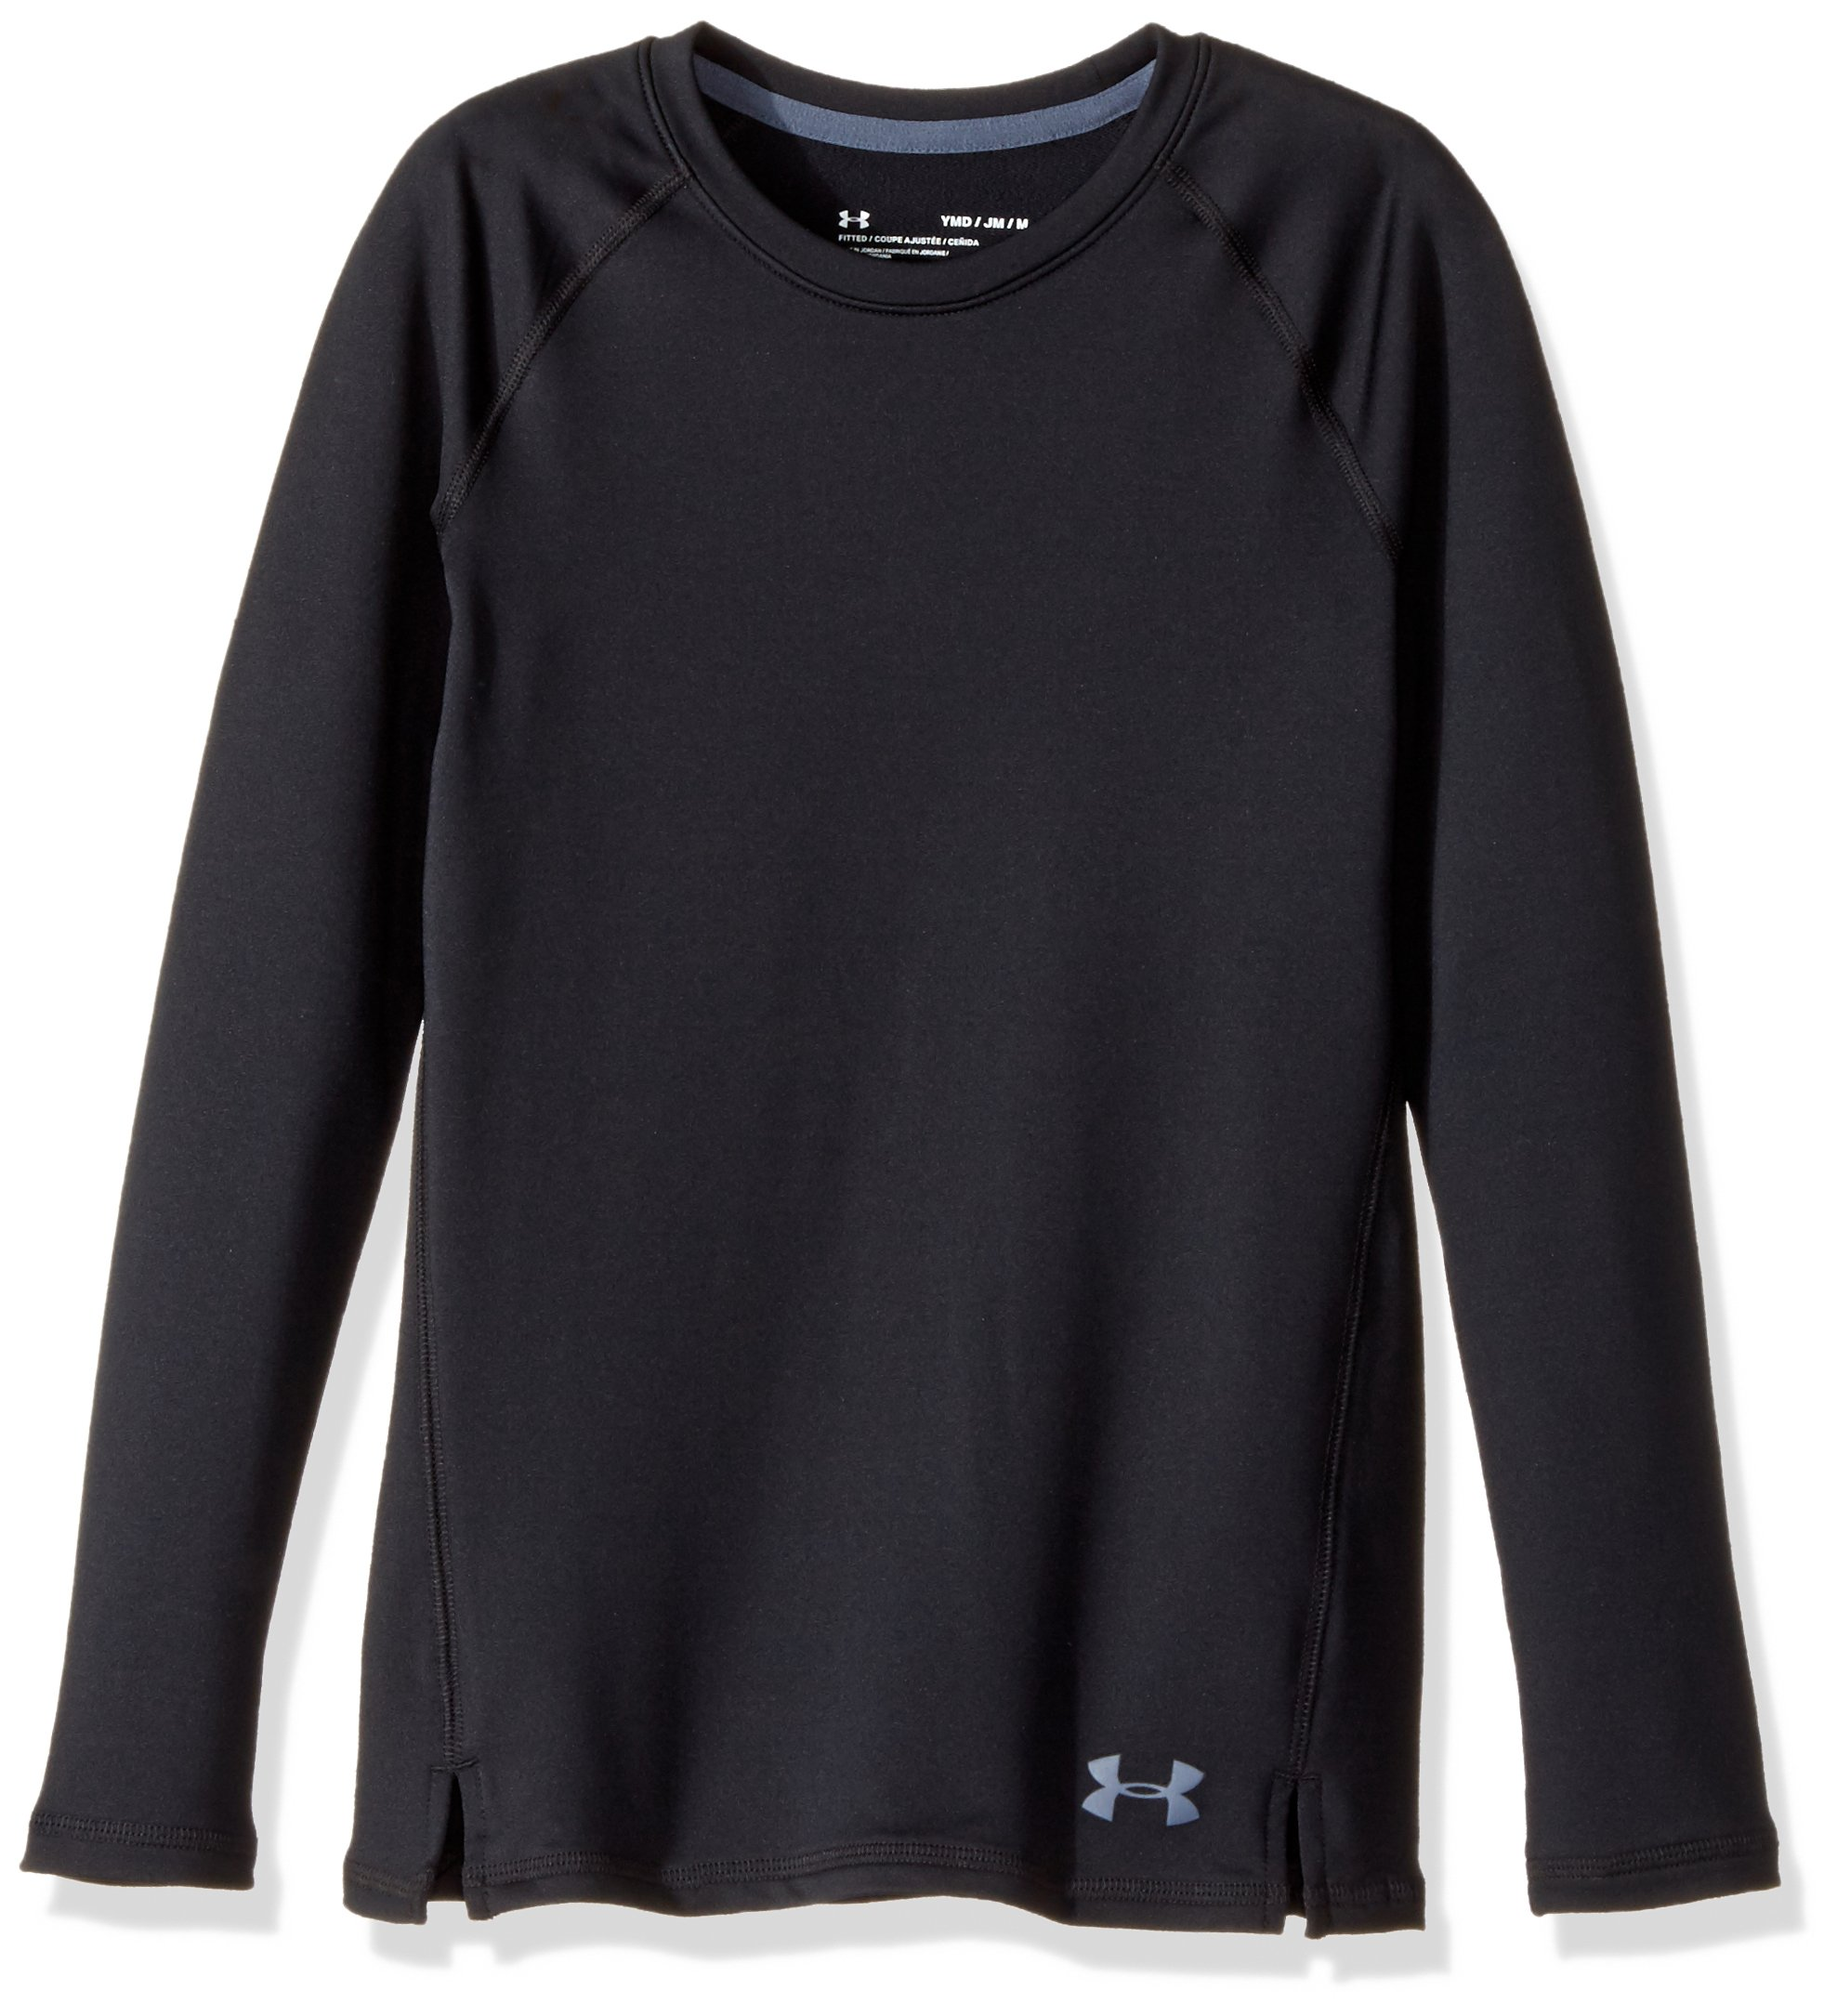 Under Armour Girls' ColdGear Crew Neck,Black (001)/Apollo Gray, Youth X-Small